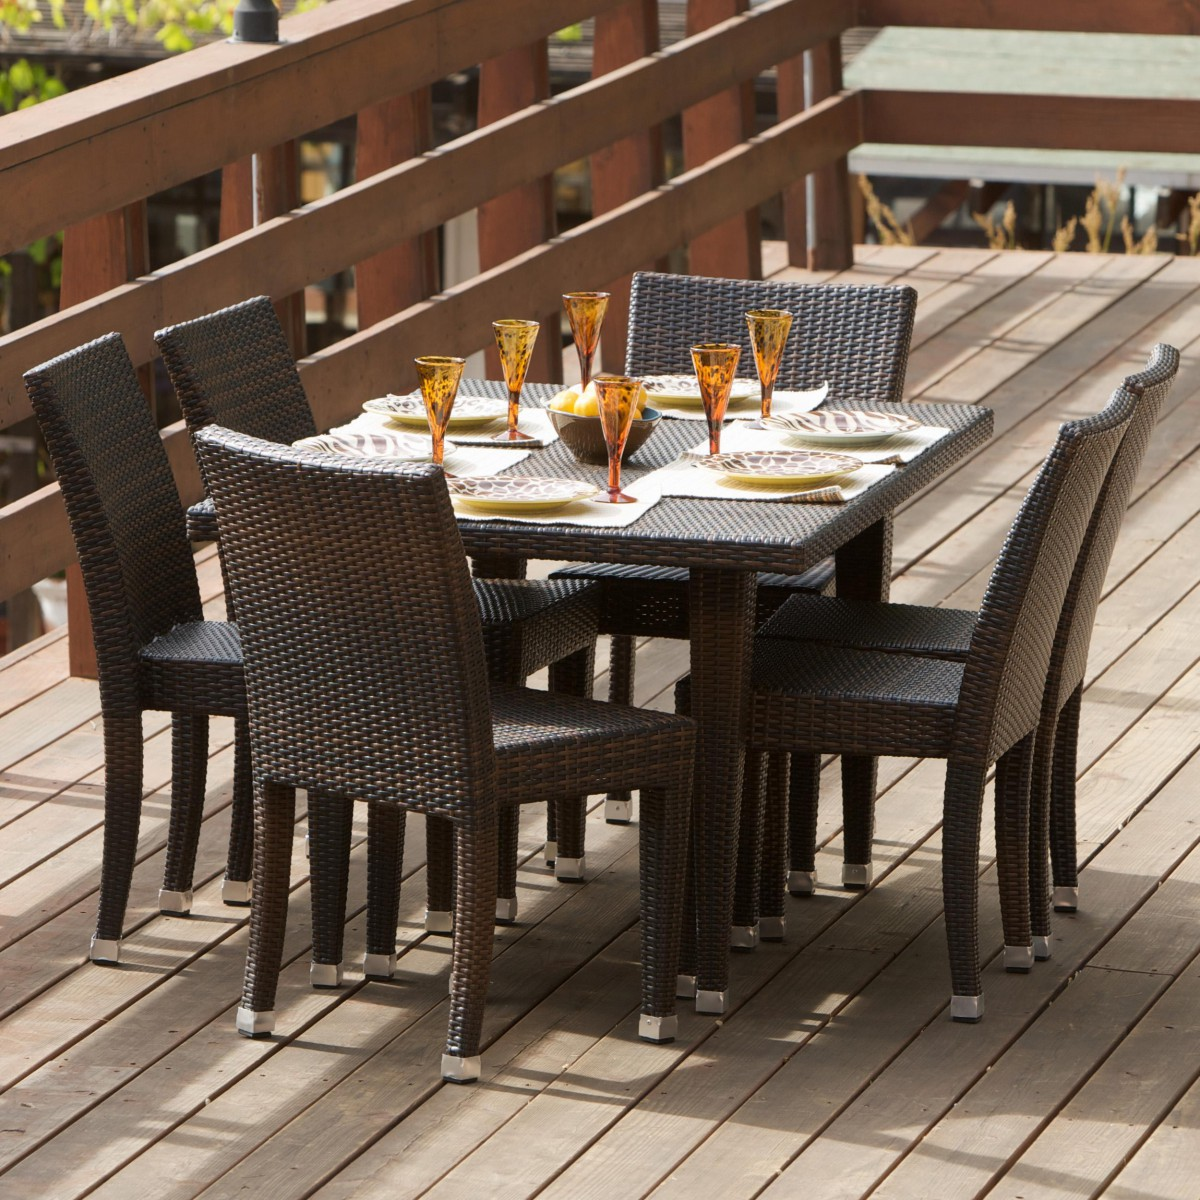 Delightful All Weather Wicker 7 Piece Outdoor Patio Dining Set